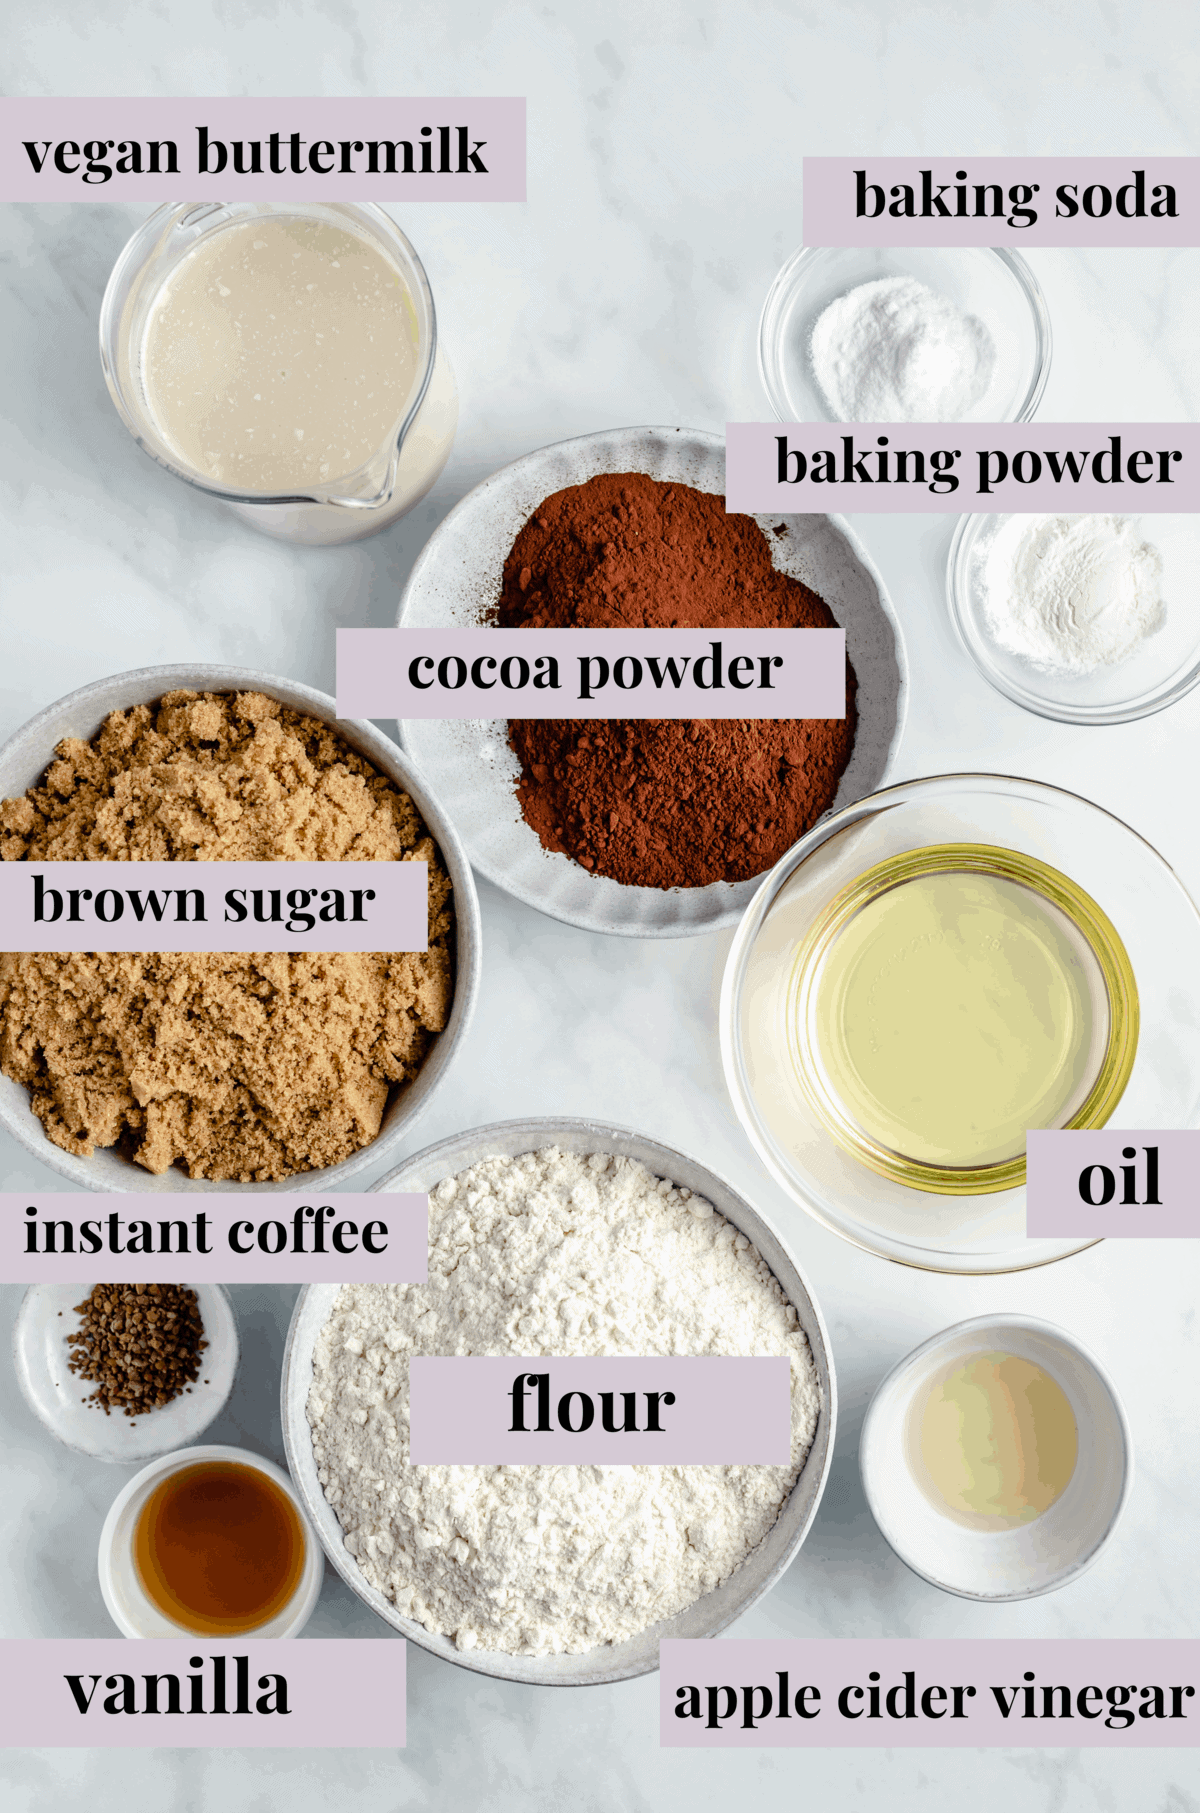 Ingredients for vegan chocolate sheet cake.